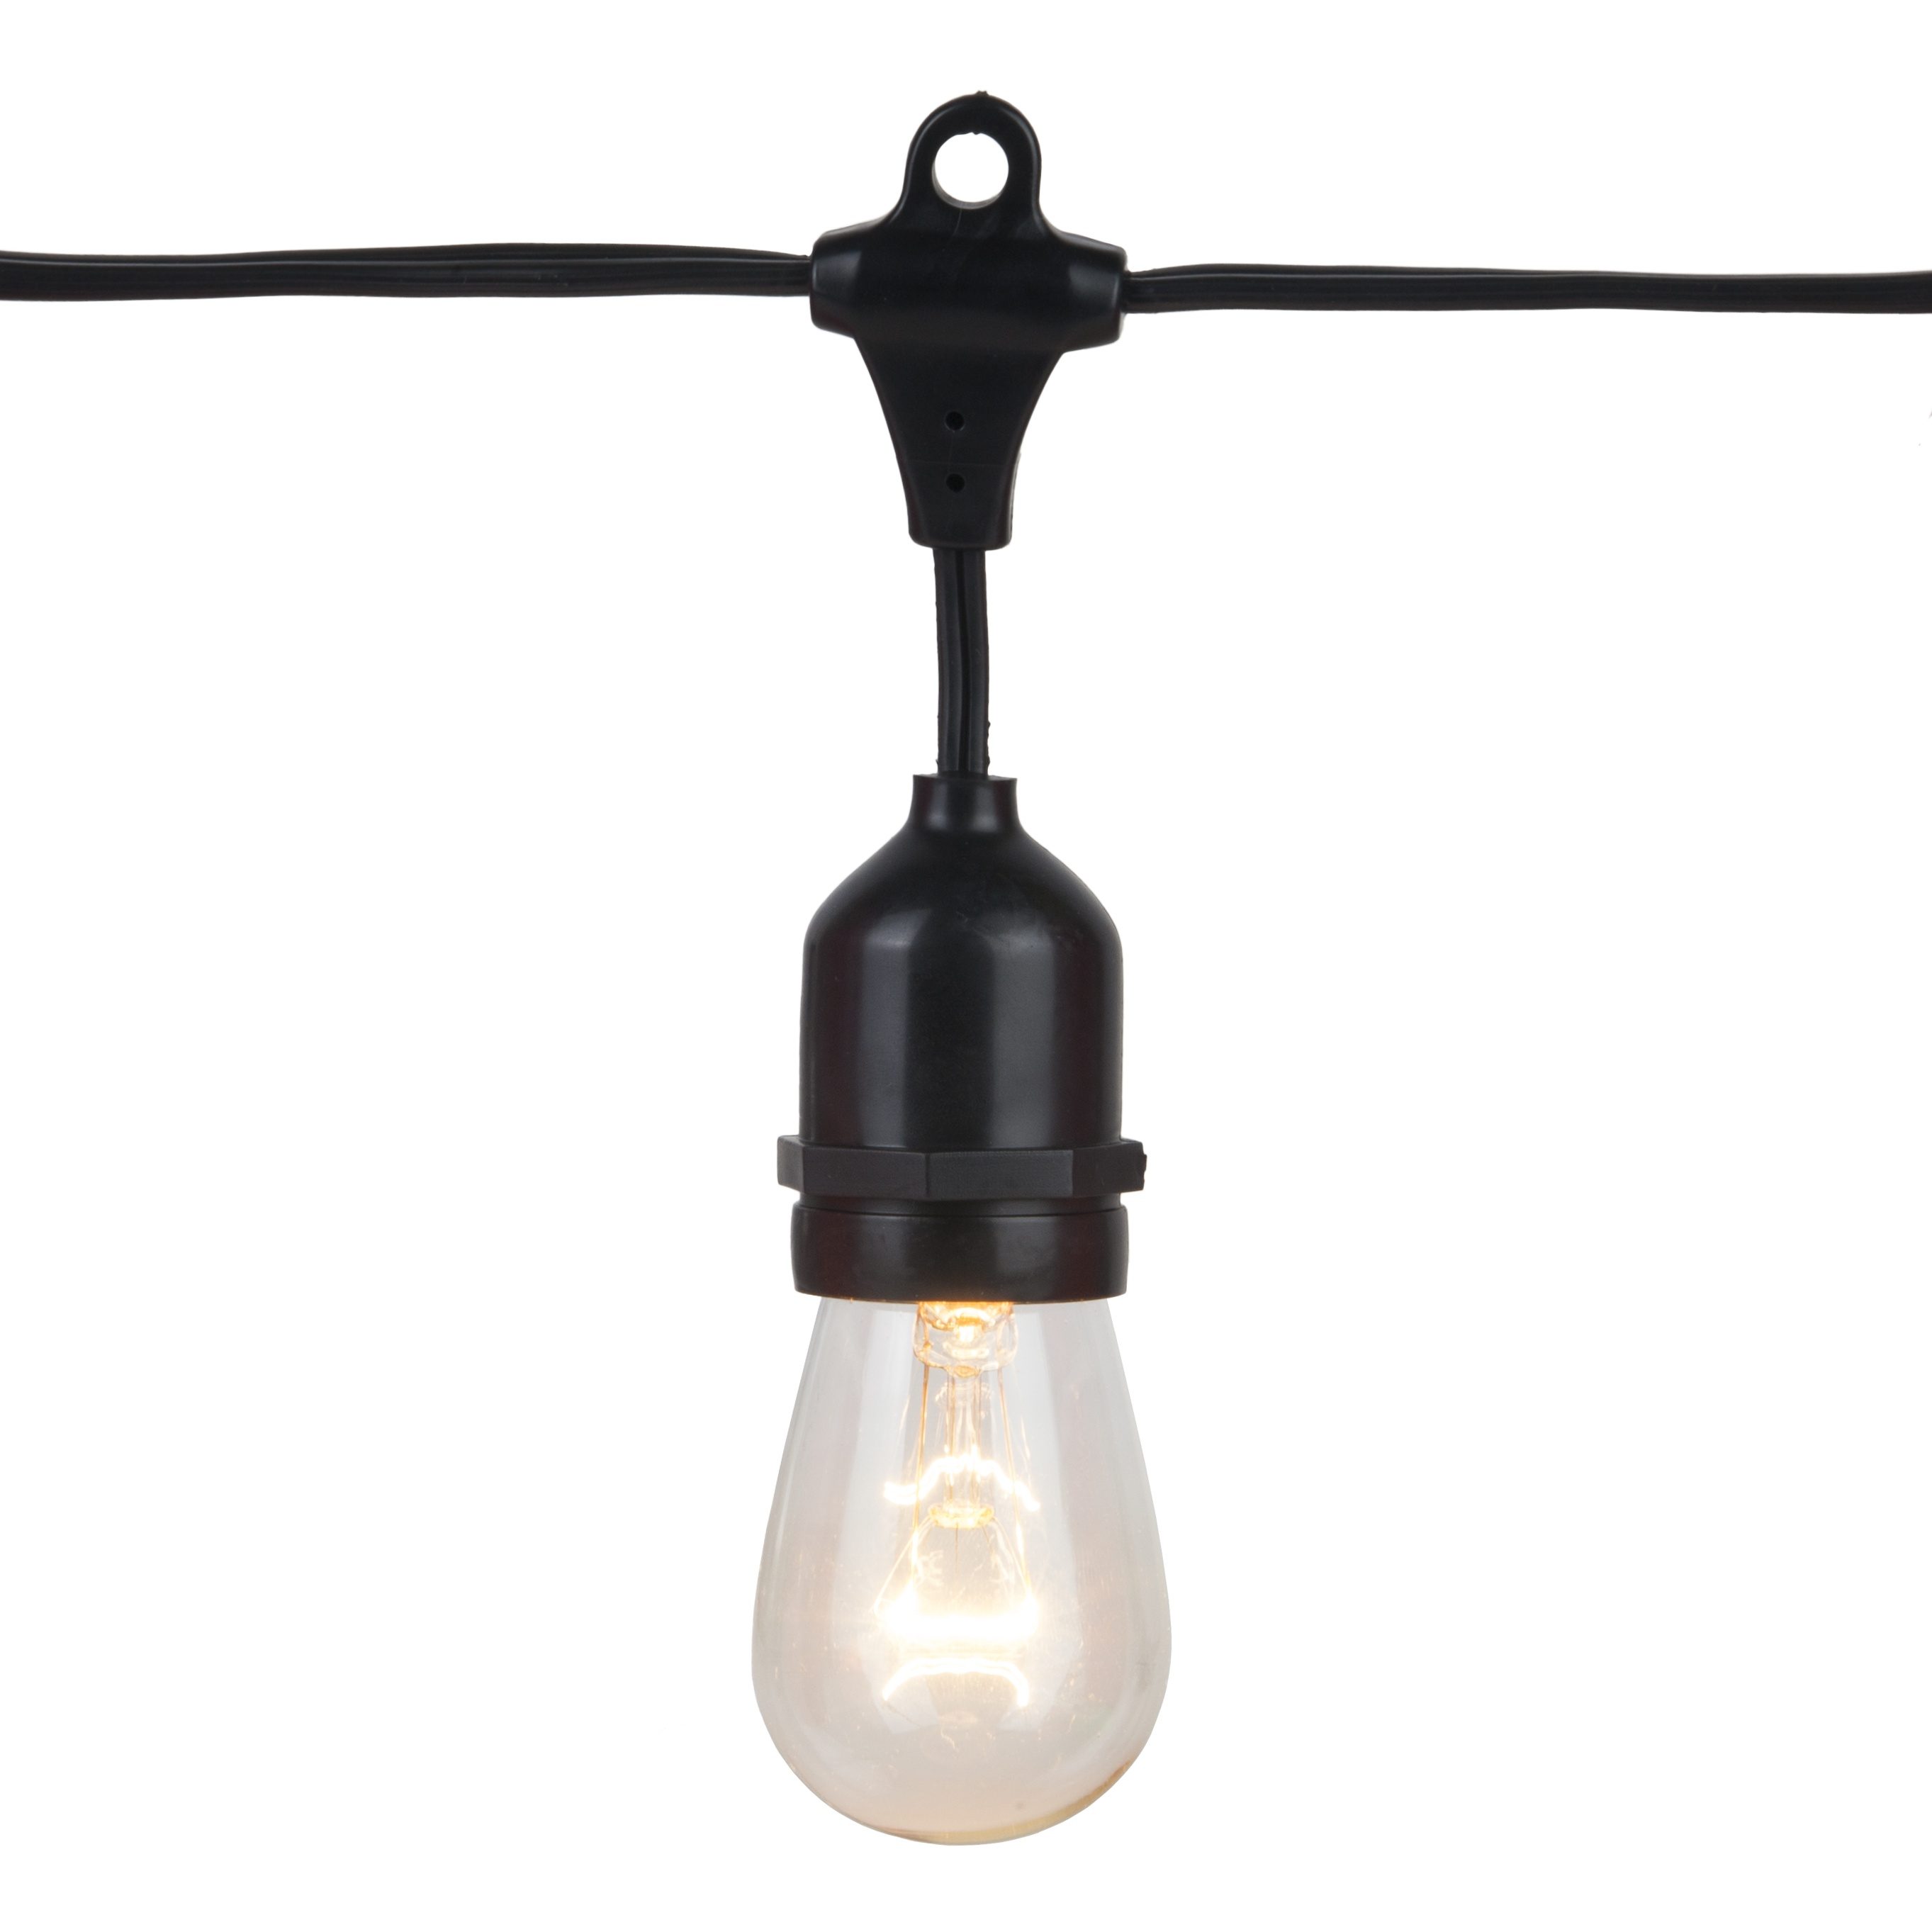 54u0027 Commercial Patio String With 24 Suspended S14 Clear Outdoor Patio Lights